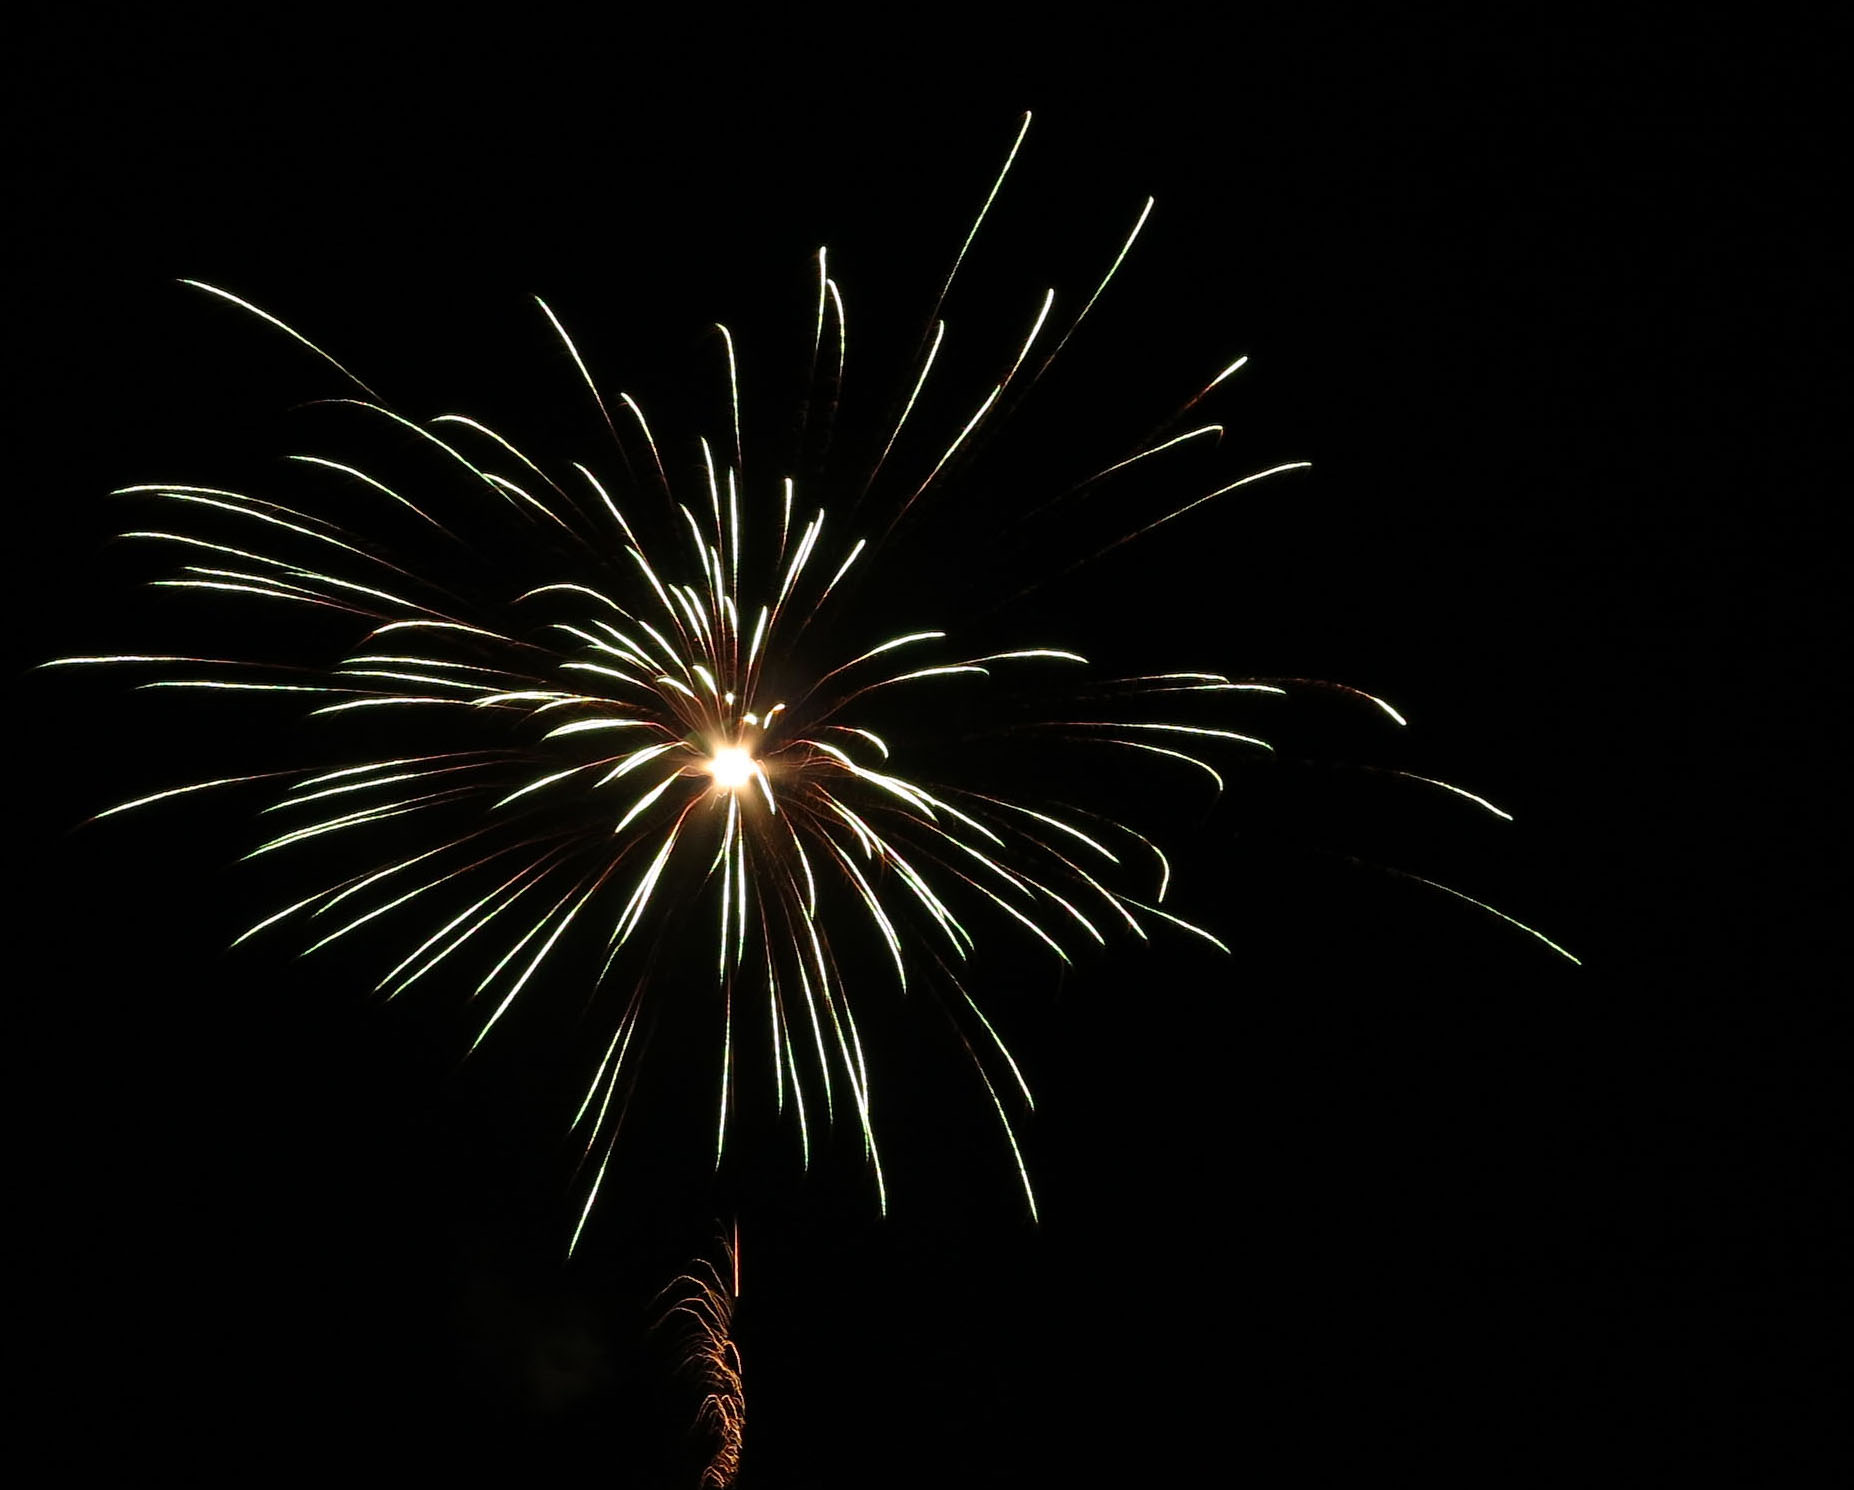 bahamas, abaco, green turtle cay, fireworks, new years